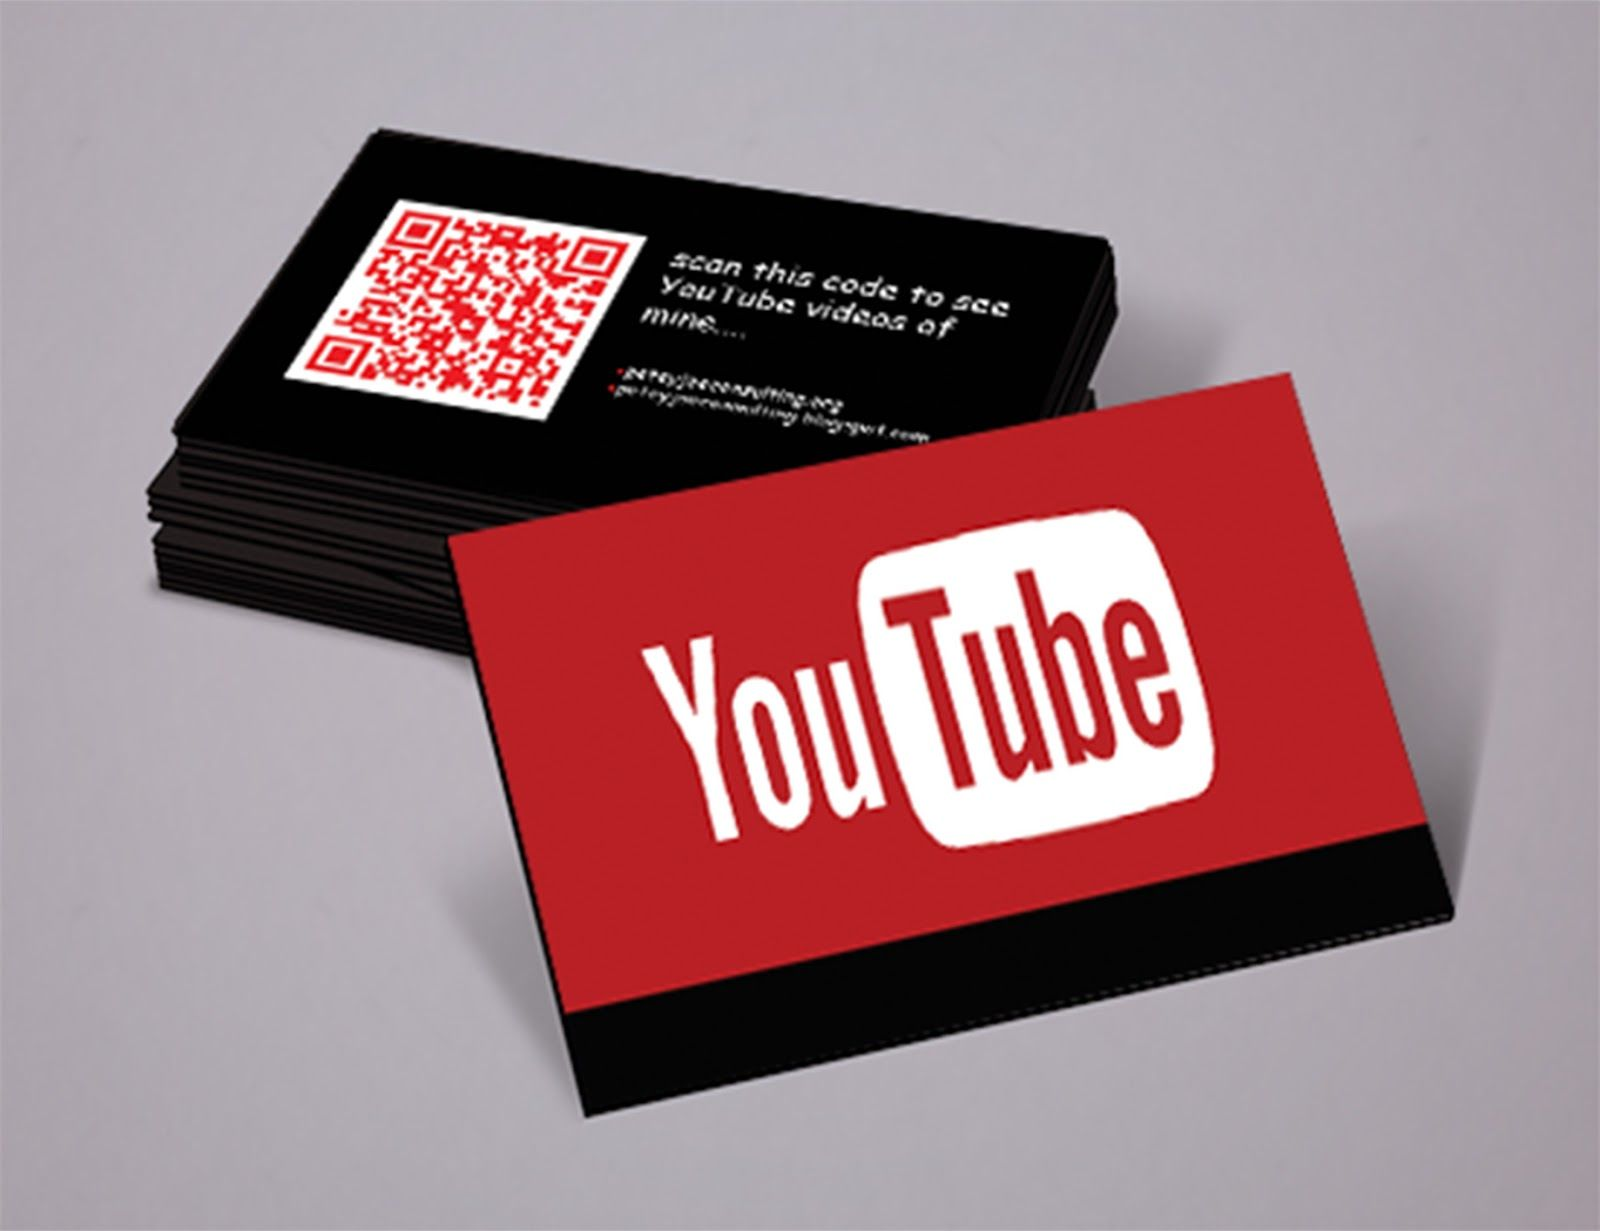 Awesome business cards business cards pinterest awesome awesome business cards colourmoves Image collections